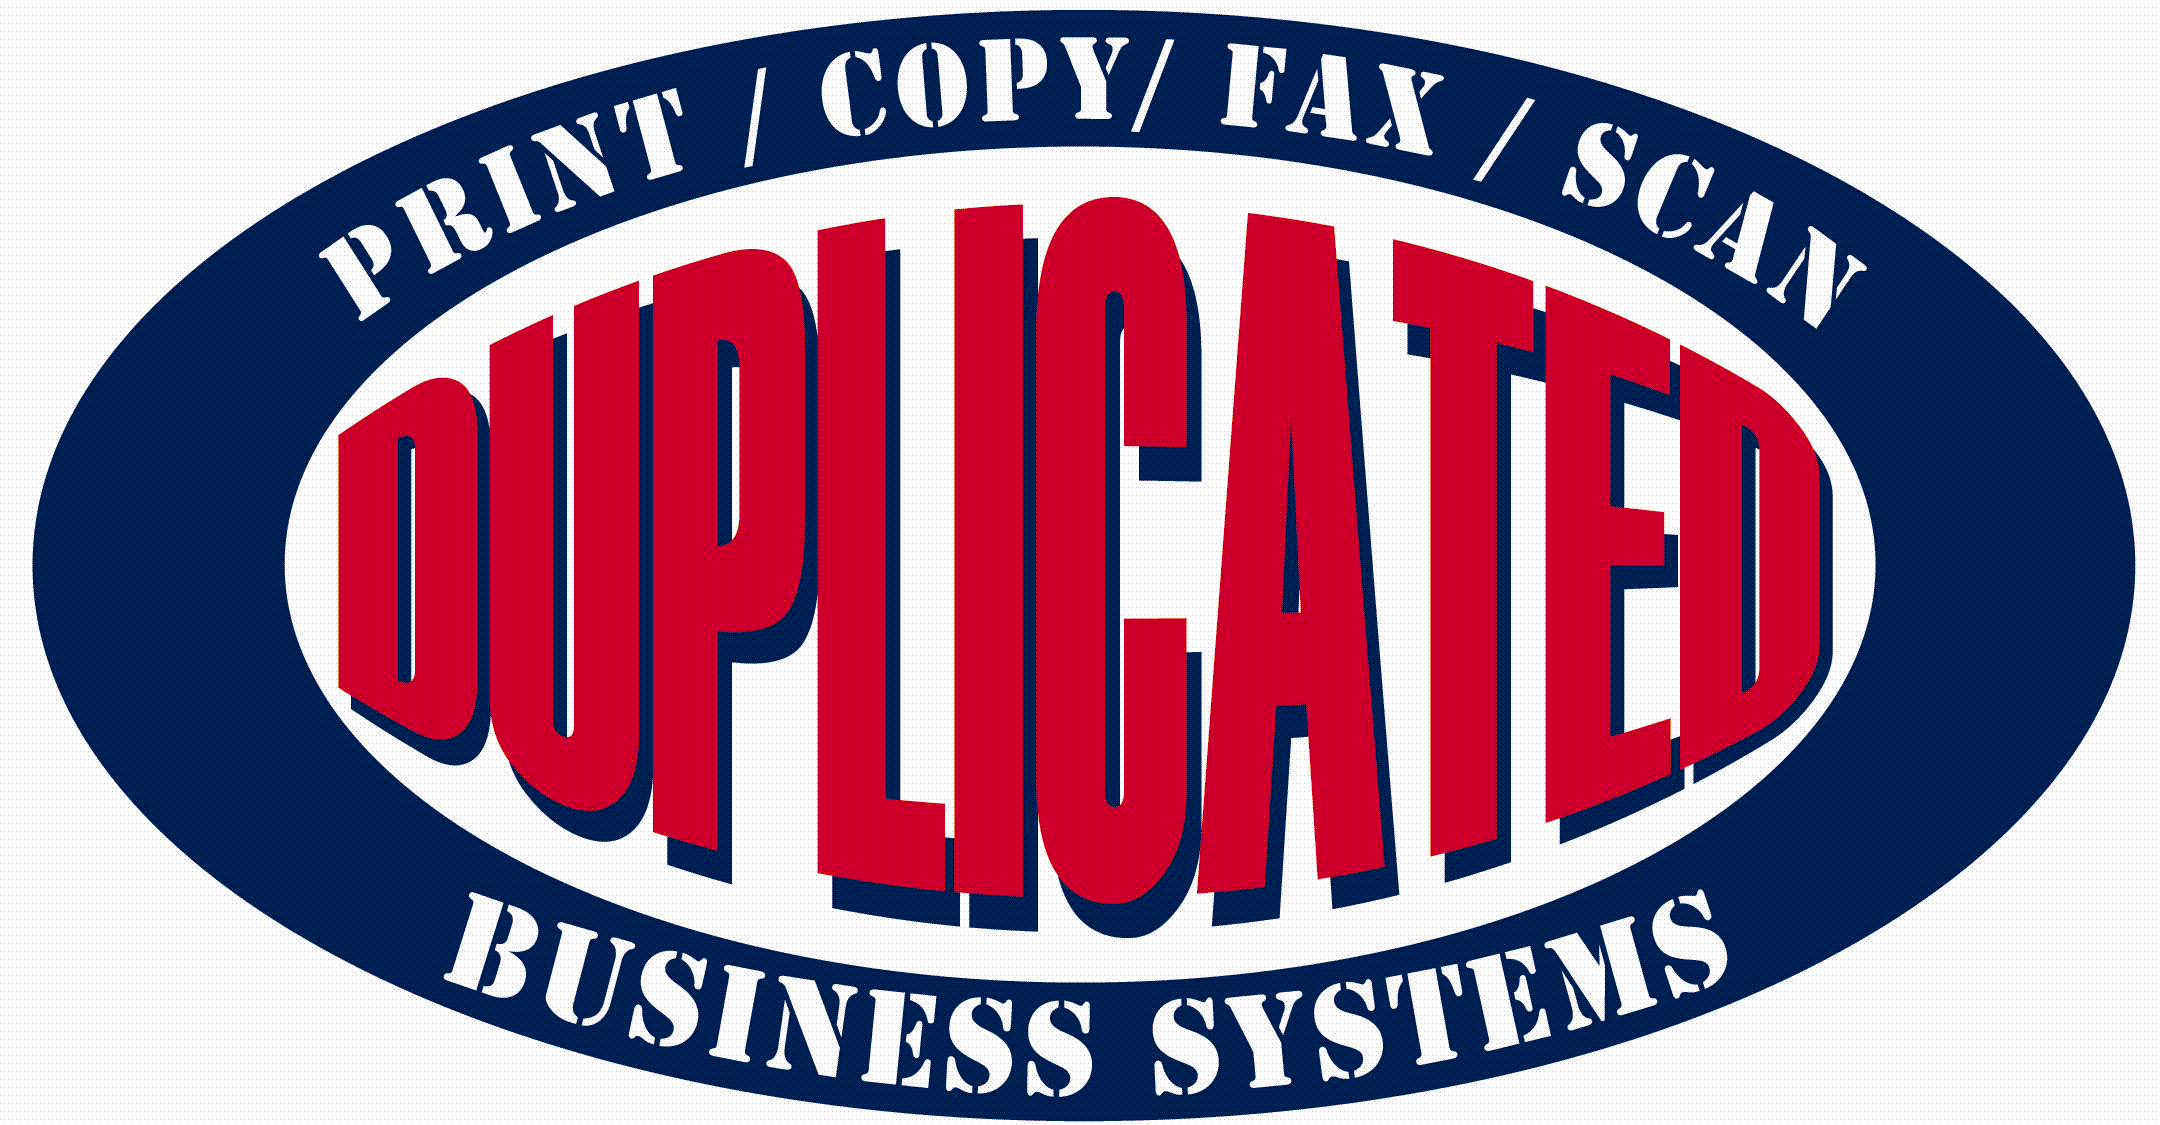 Duplicated Business Systems